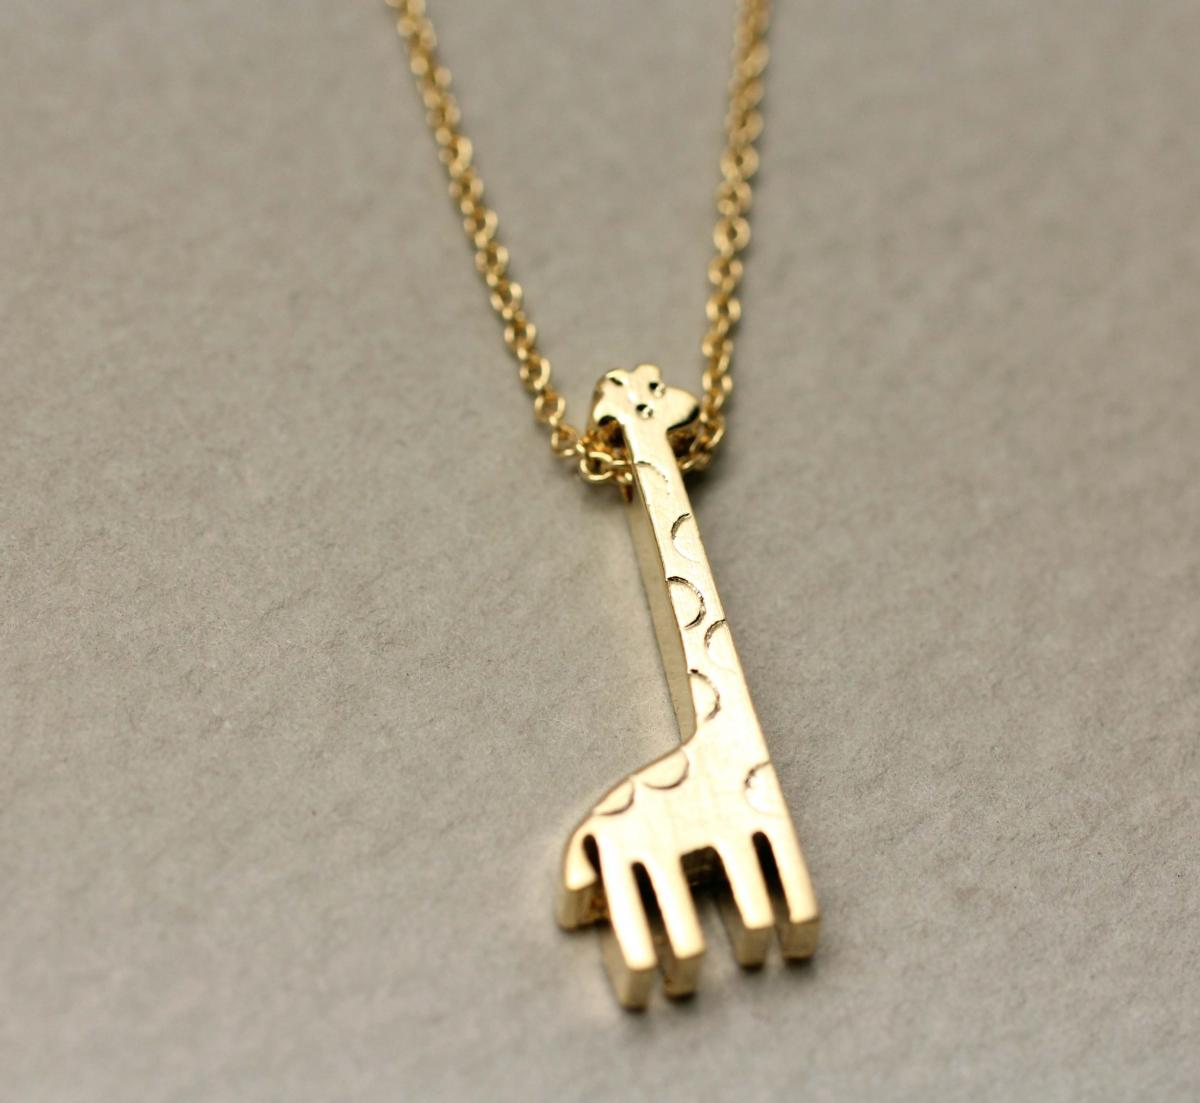 giraffe charm pendant necklace in gold on luulla